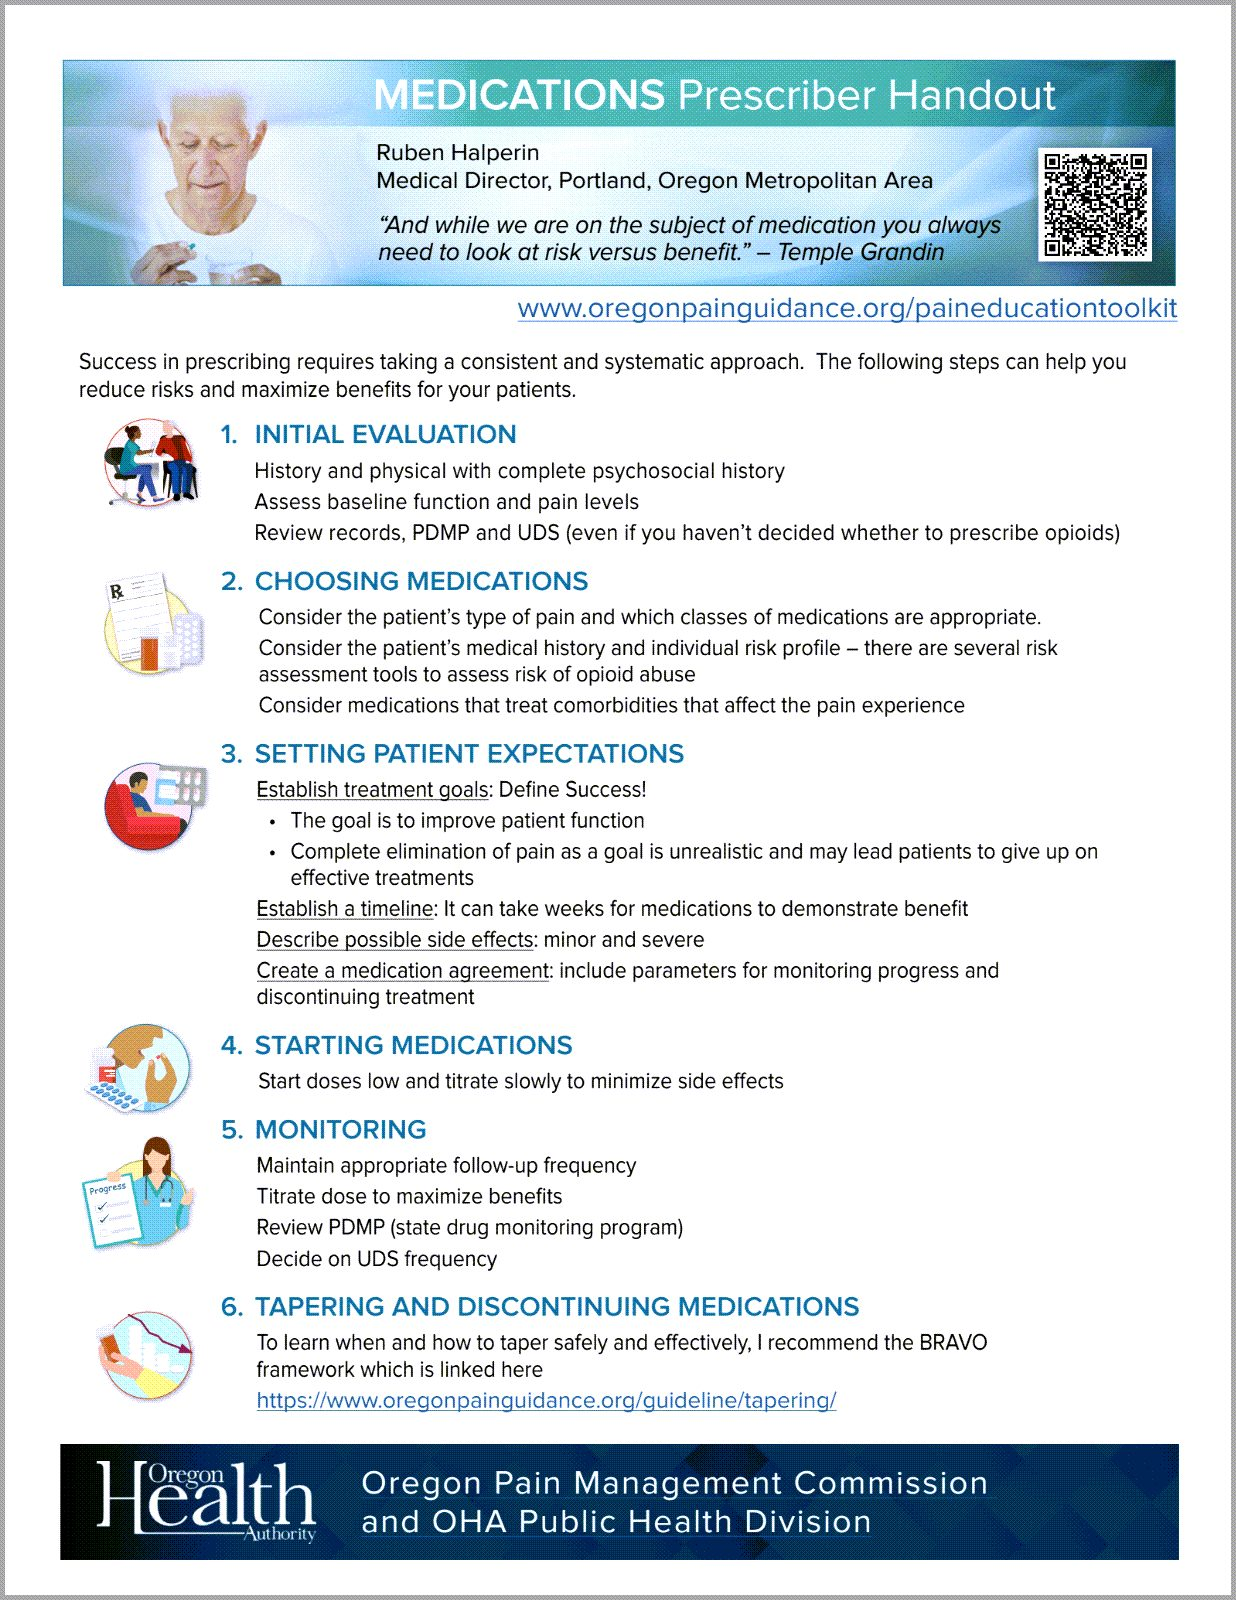 Pain medications - information for clinicians